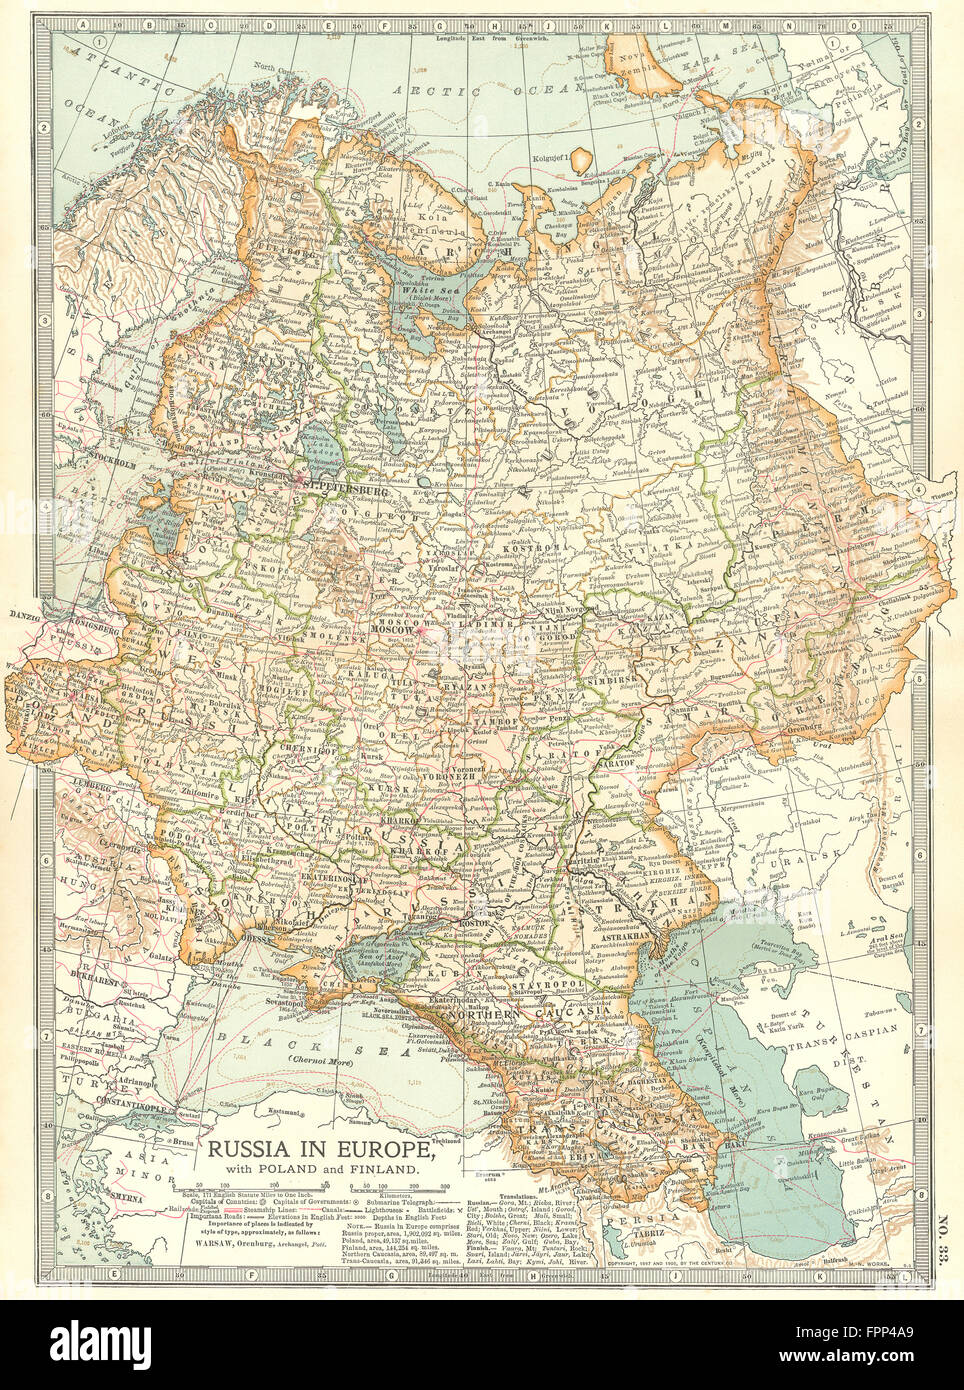 Russia in europe with poland finland caucasus georgia ukraine russia in europe with poland finland caucasus georgia ukraine 1903 map gumiabroncs Image collections